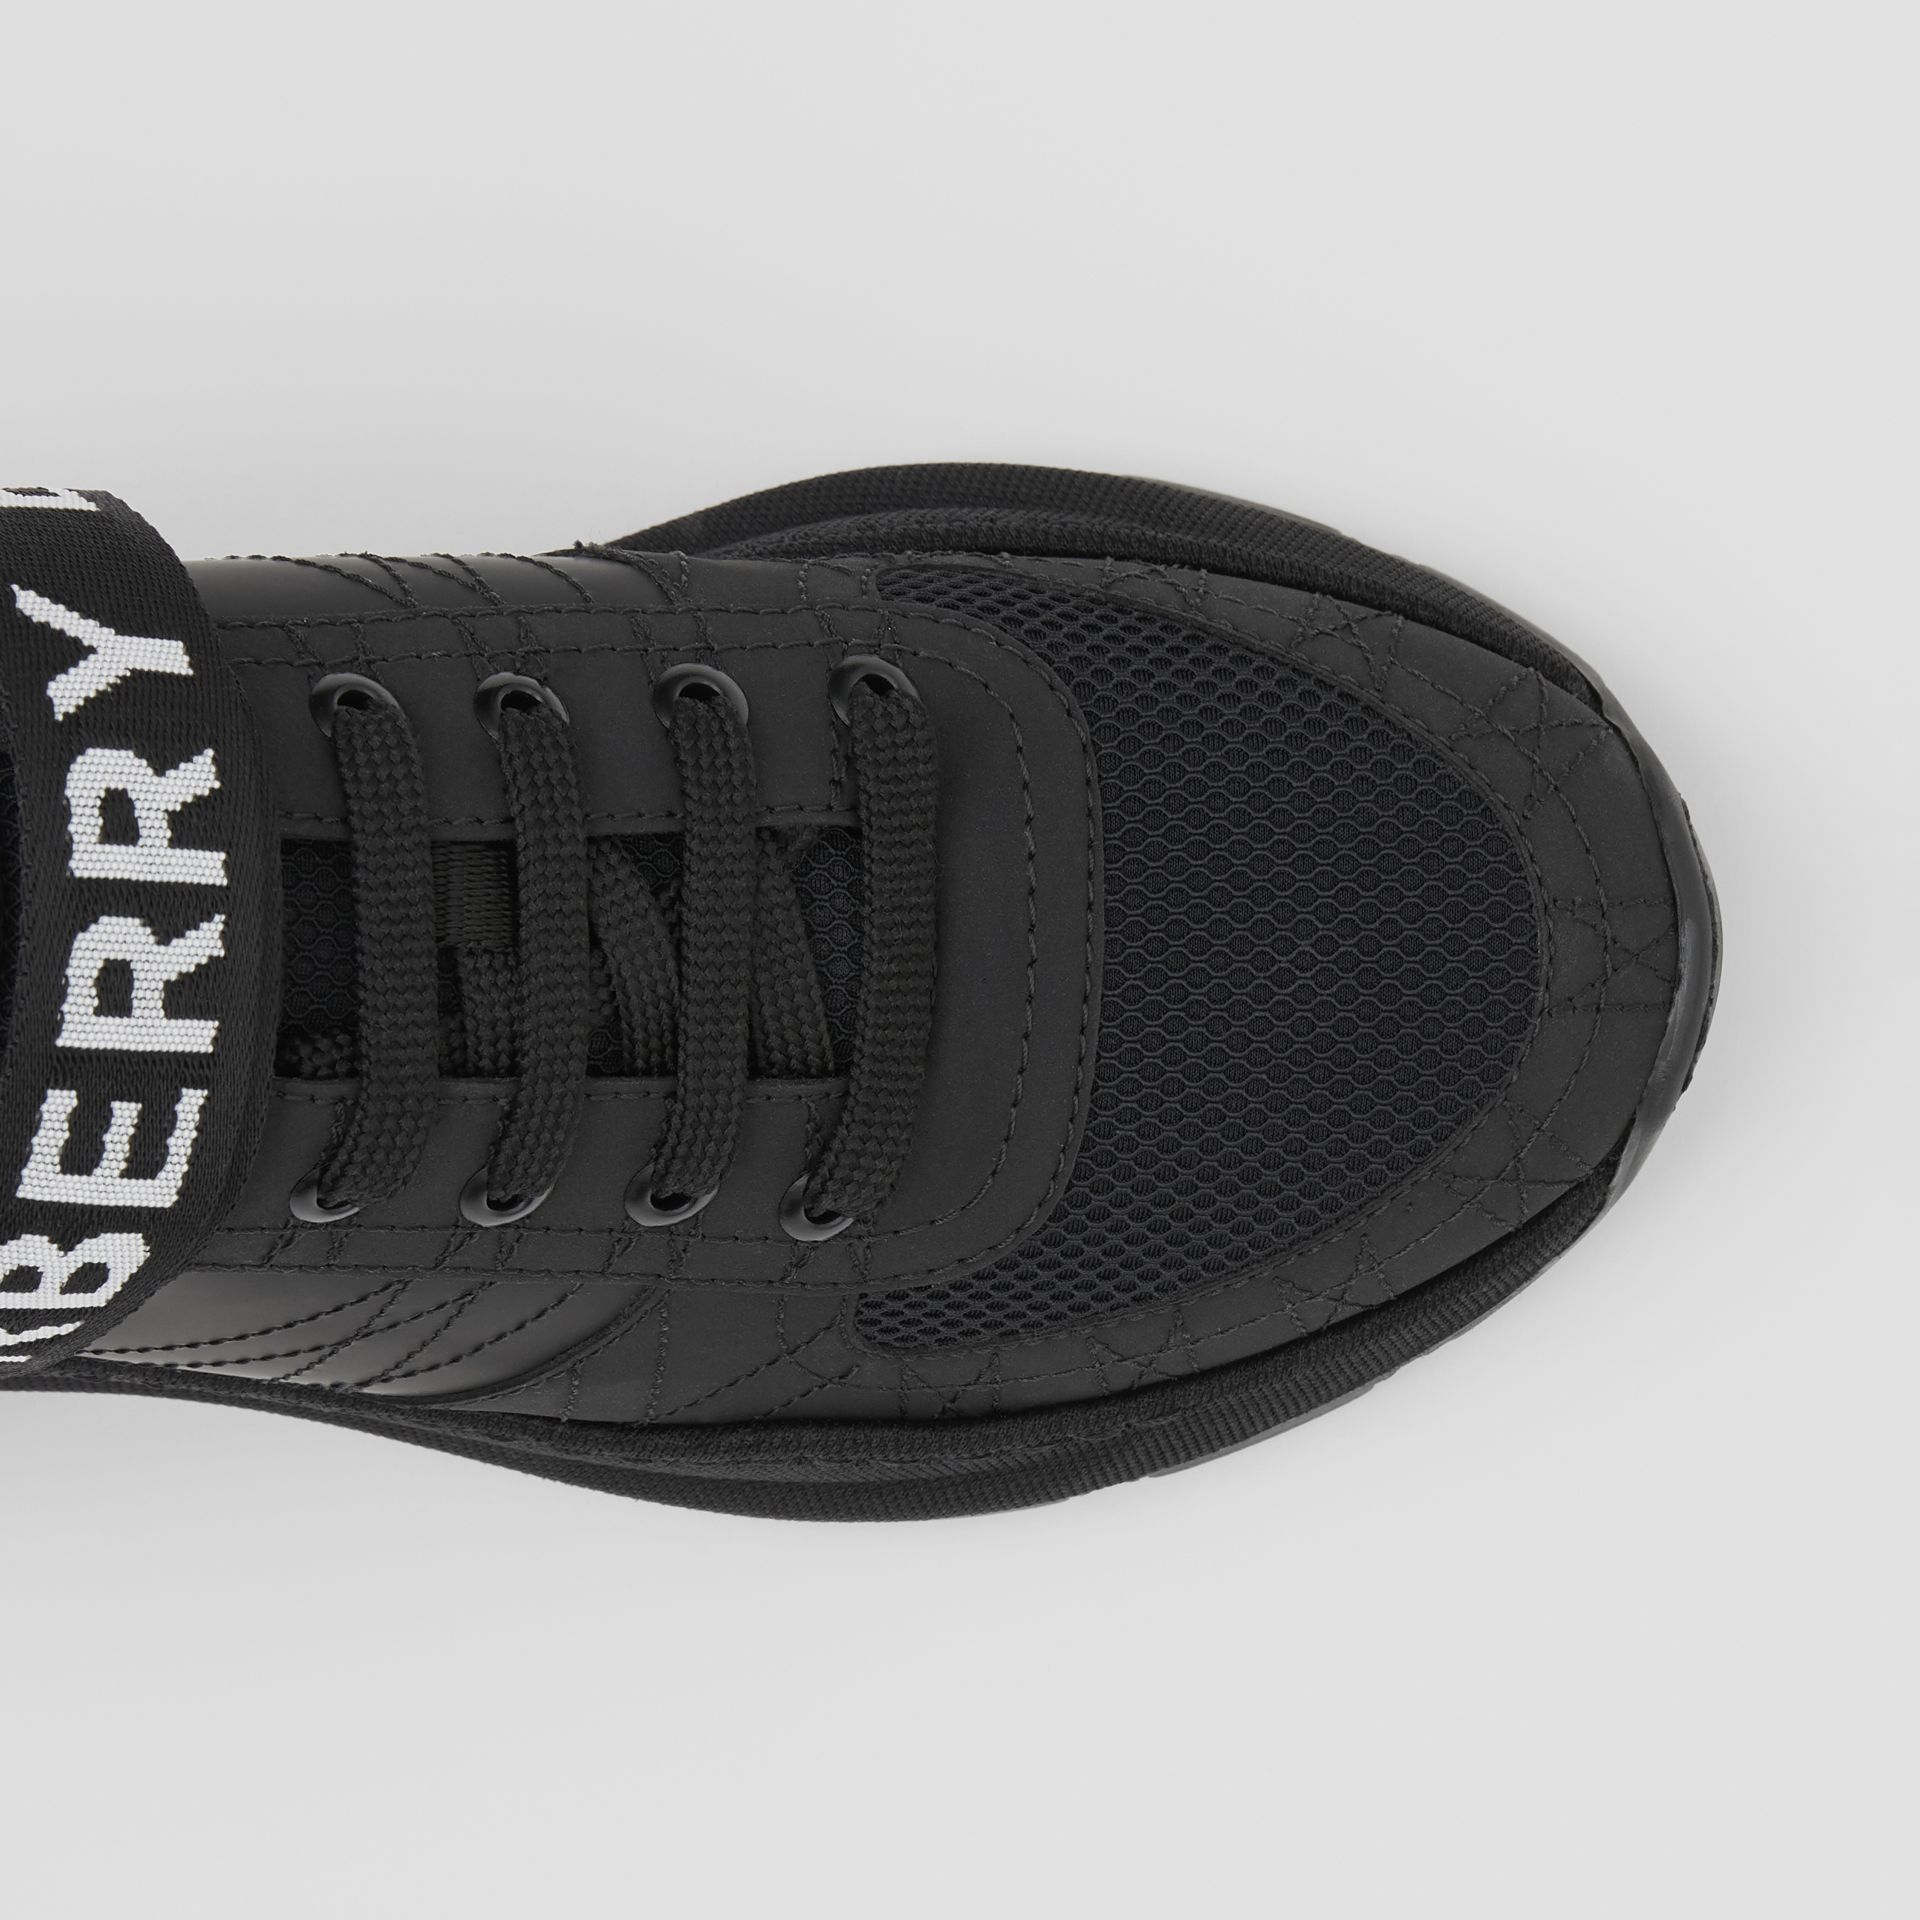 Logo Detail Leather, Nubuck and Mesh Sneakers in Black - Women | Burberry United Kingdom - gallery image 6